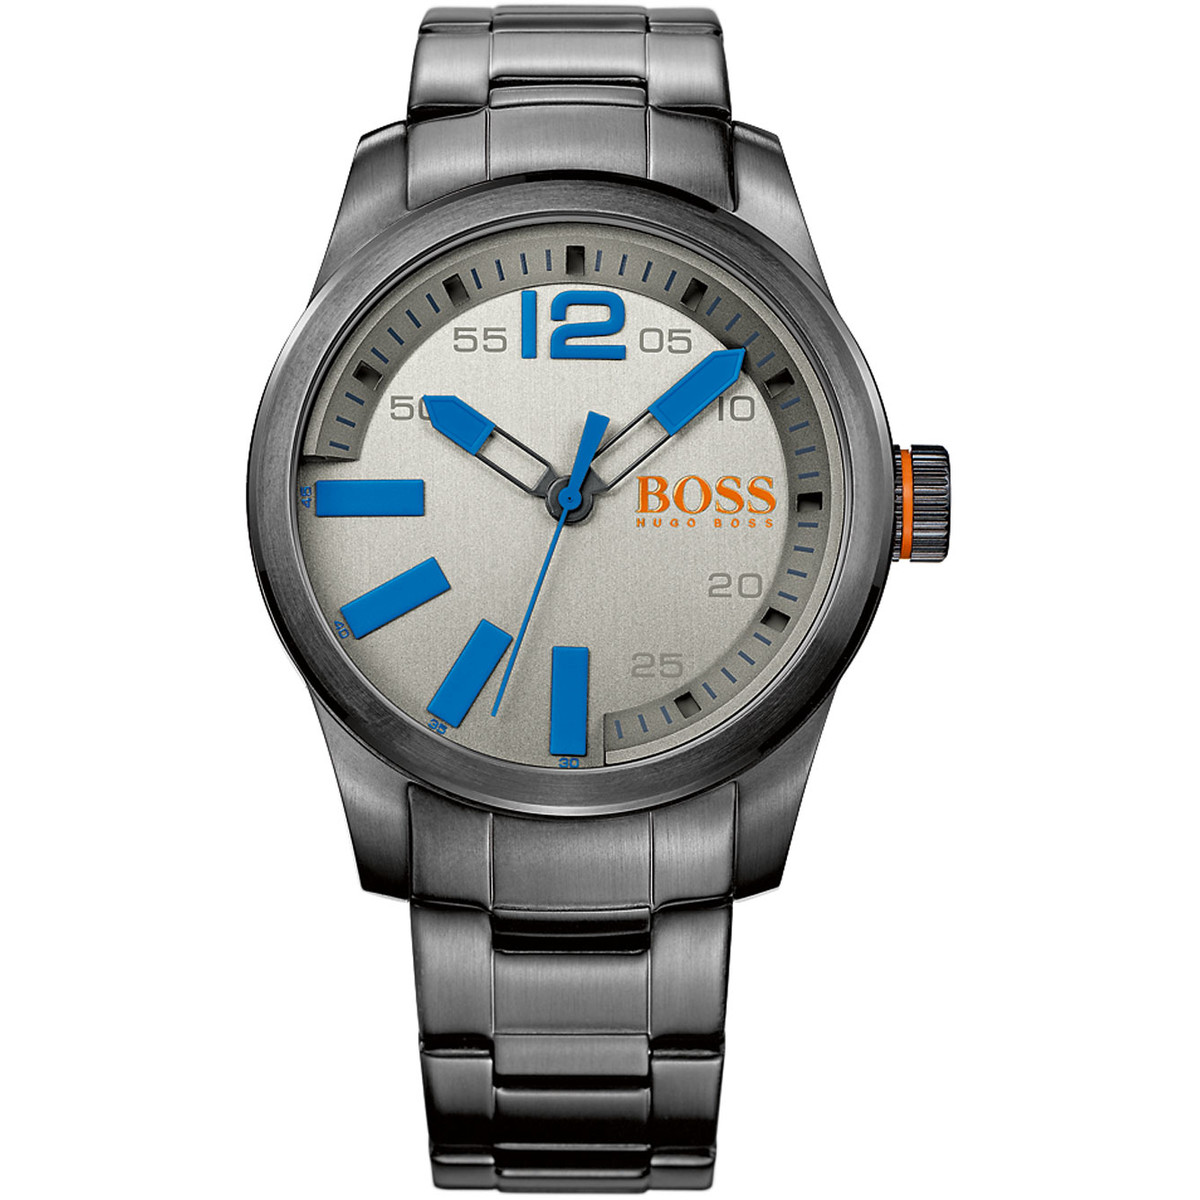 Ceas barbatesc Hugo Boss 1513060 de mana original